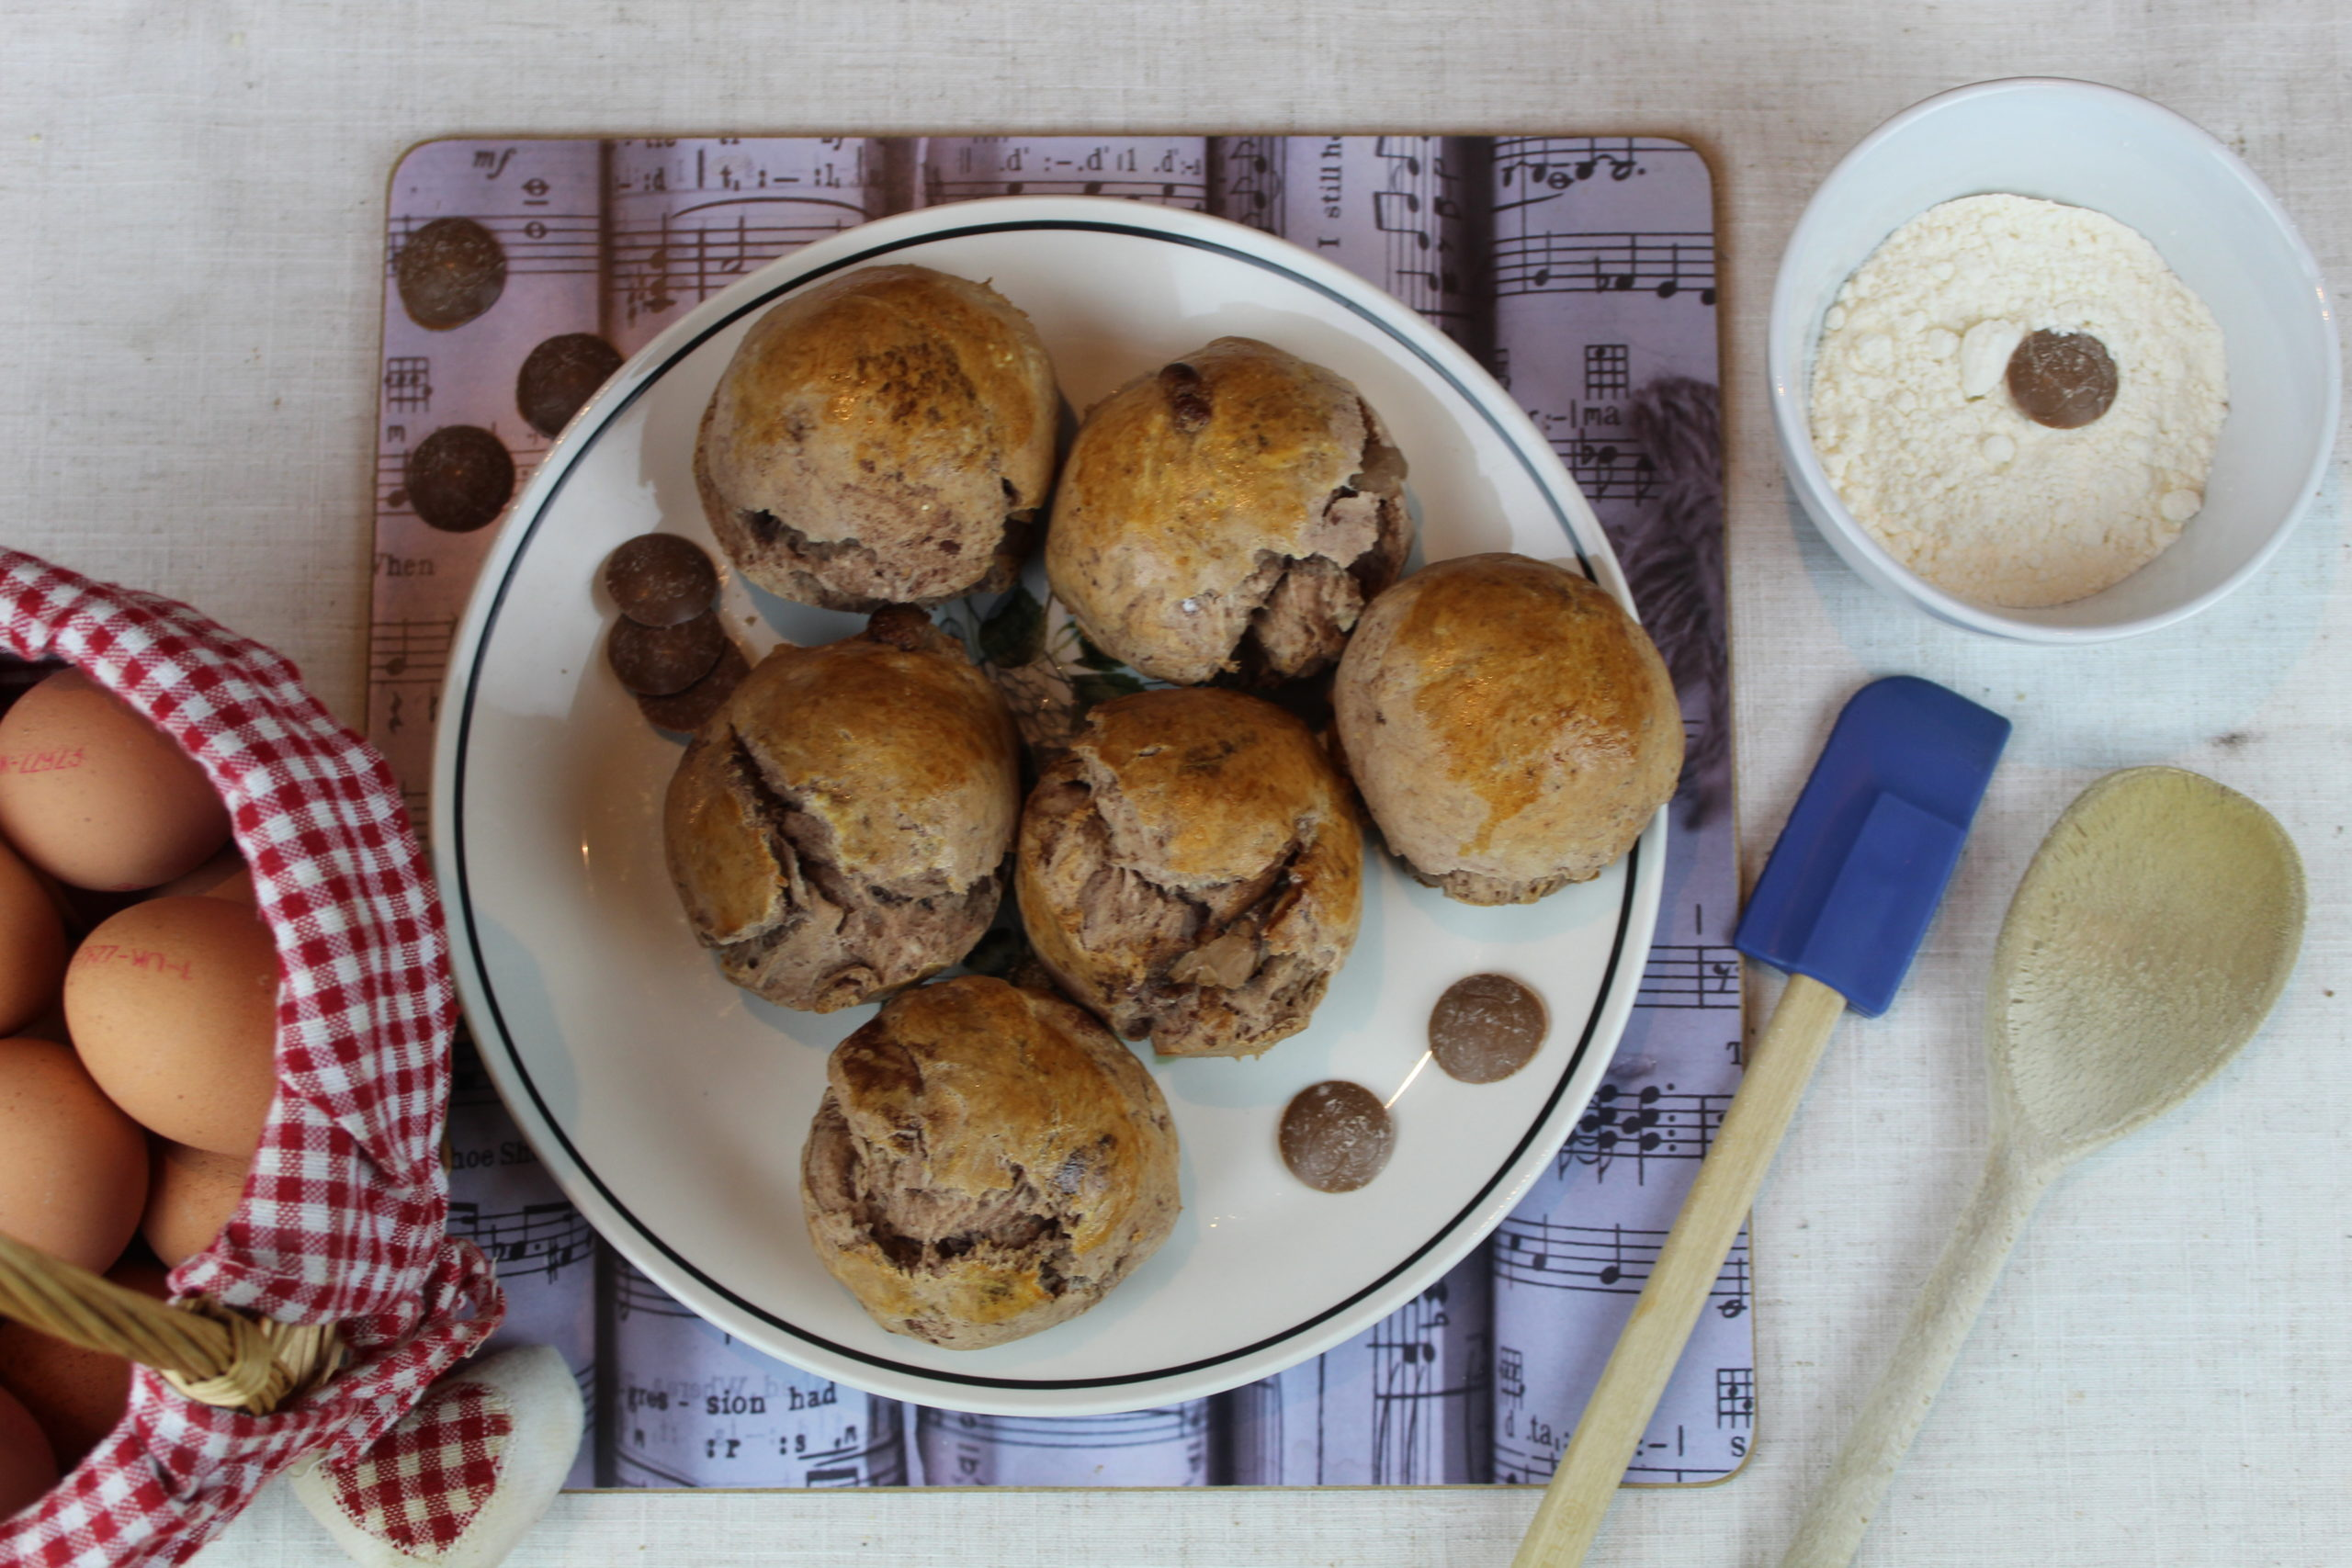 Gluten free chocolate scones with a salted caramel centre recipe